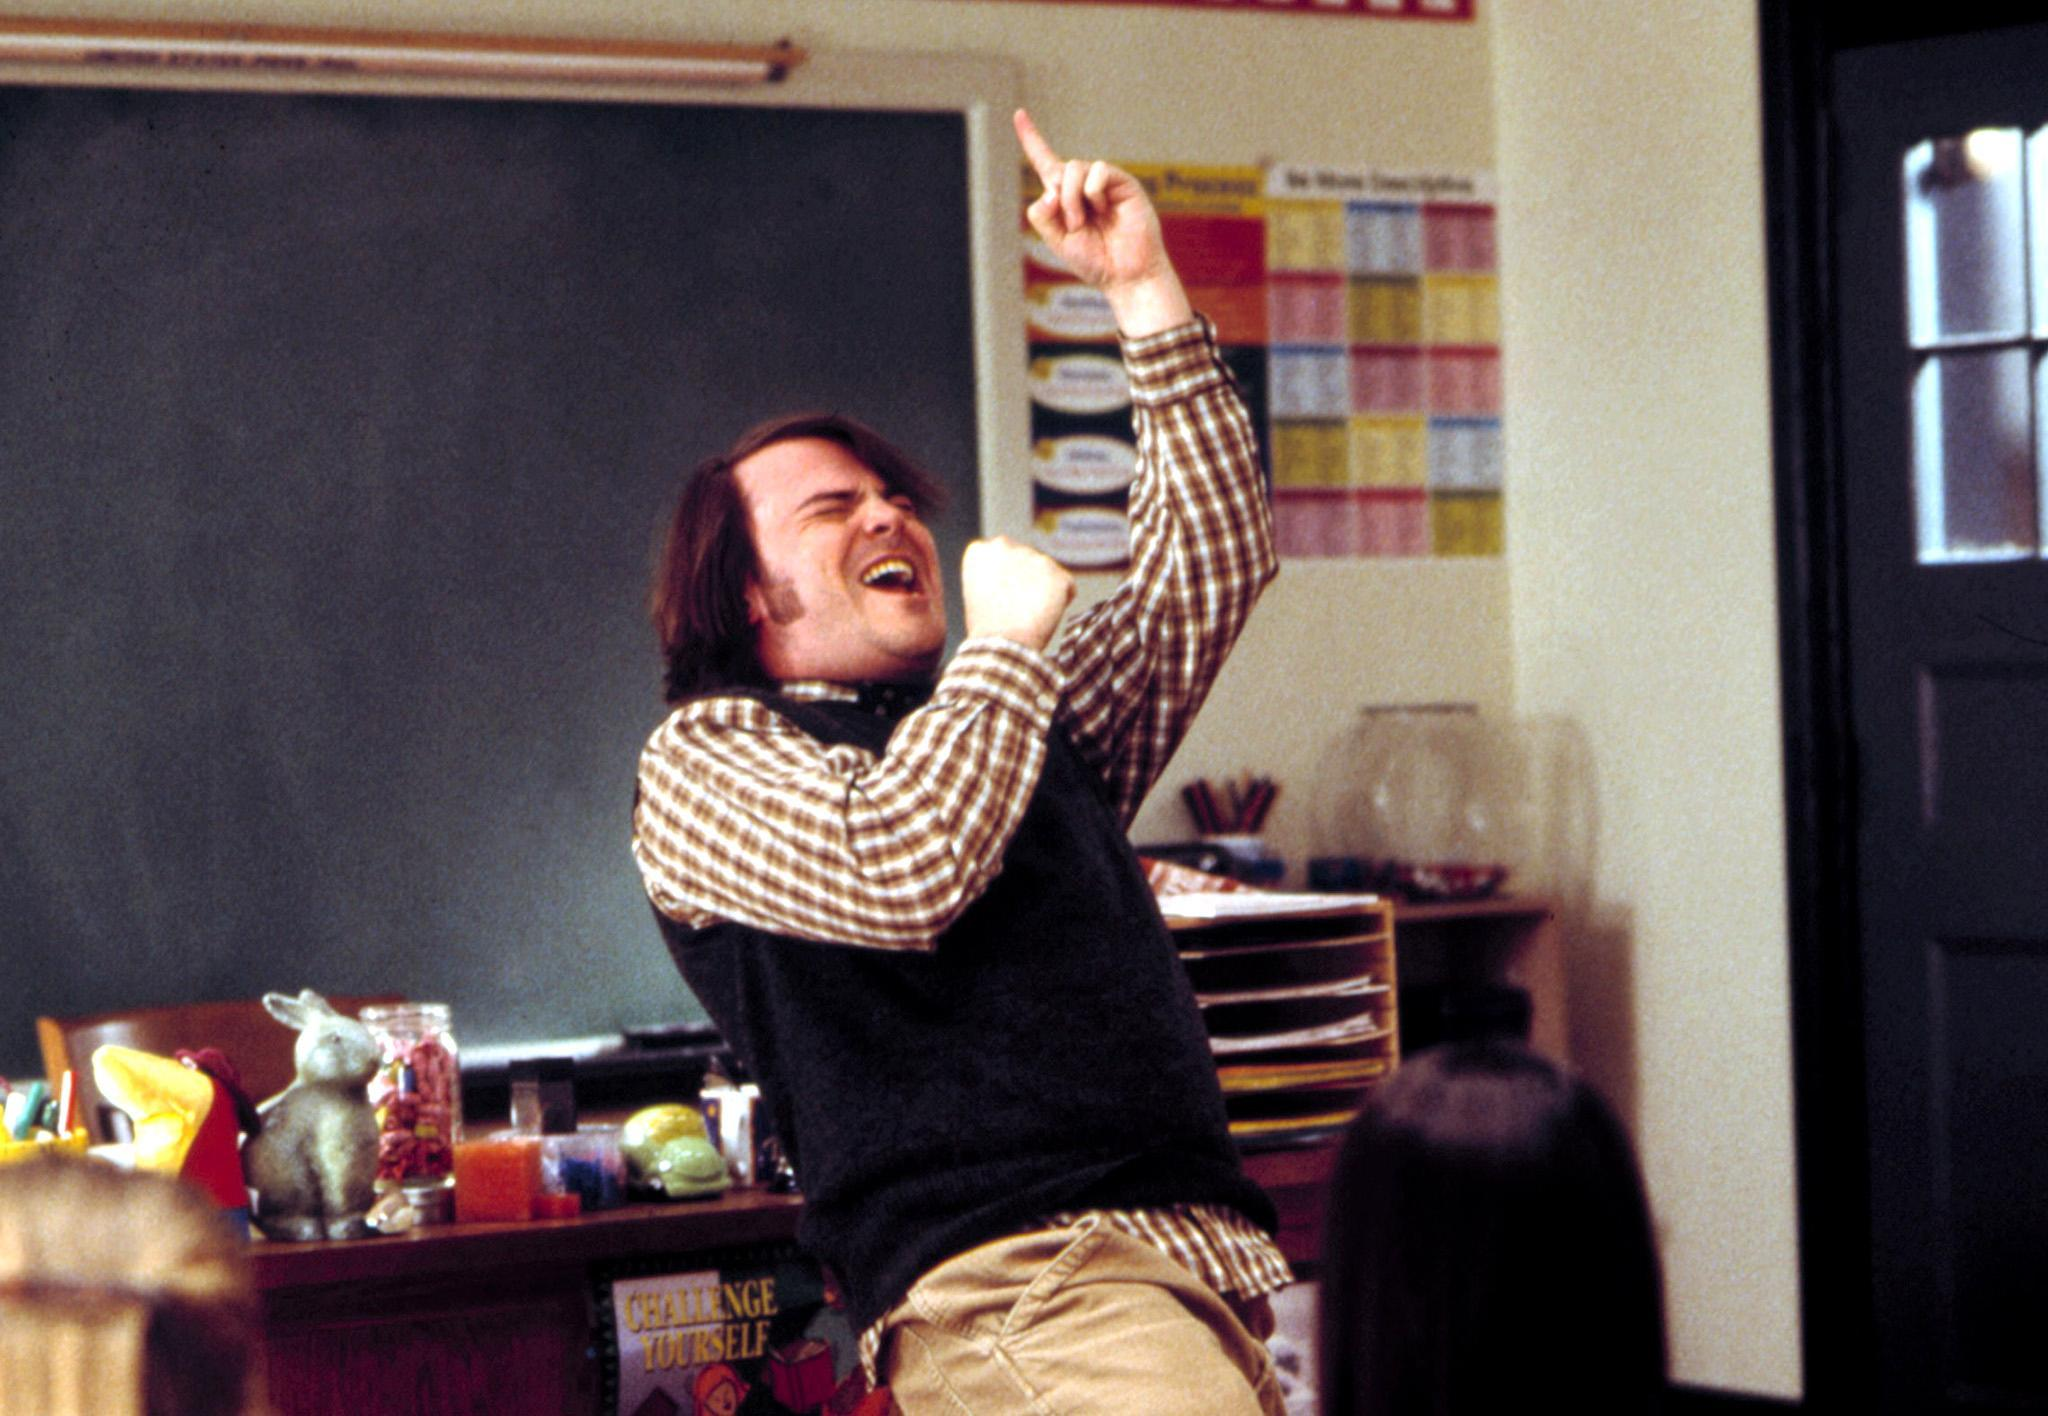 'School of Rock' Musical Coming to Broadway